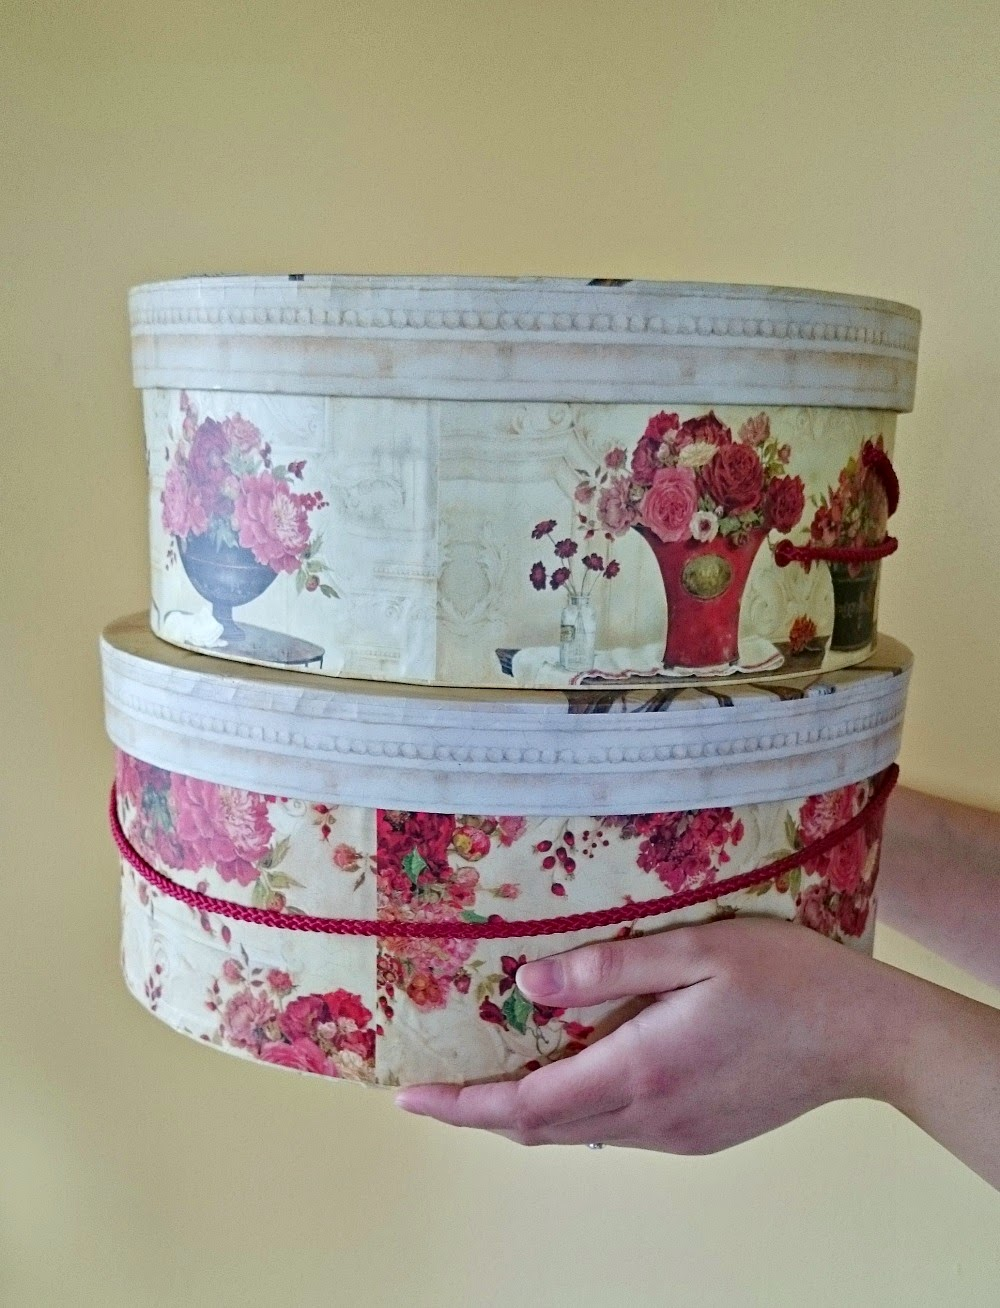 Craft hat boxes - We Plotted Our Moves Deciding How To Position The Pattern Of The Wallpaper On The Boxes We Snipped The Edges So We Could Fold Them Over Neatly Underneath